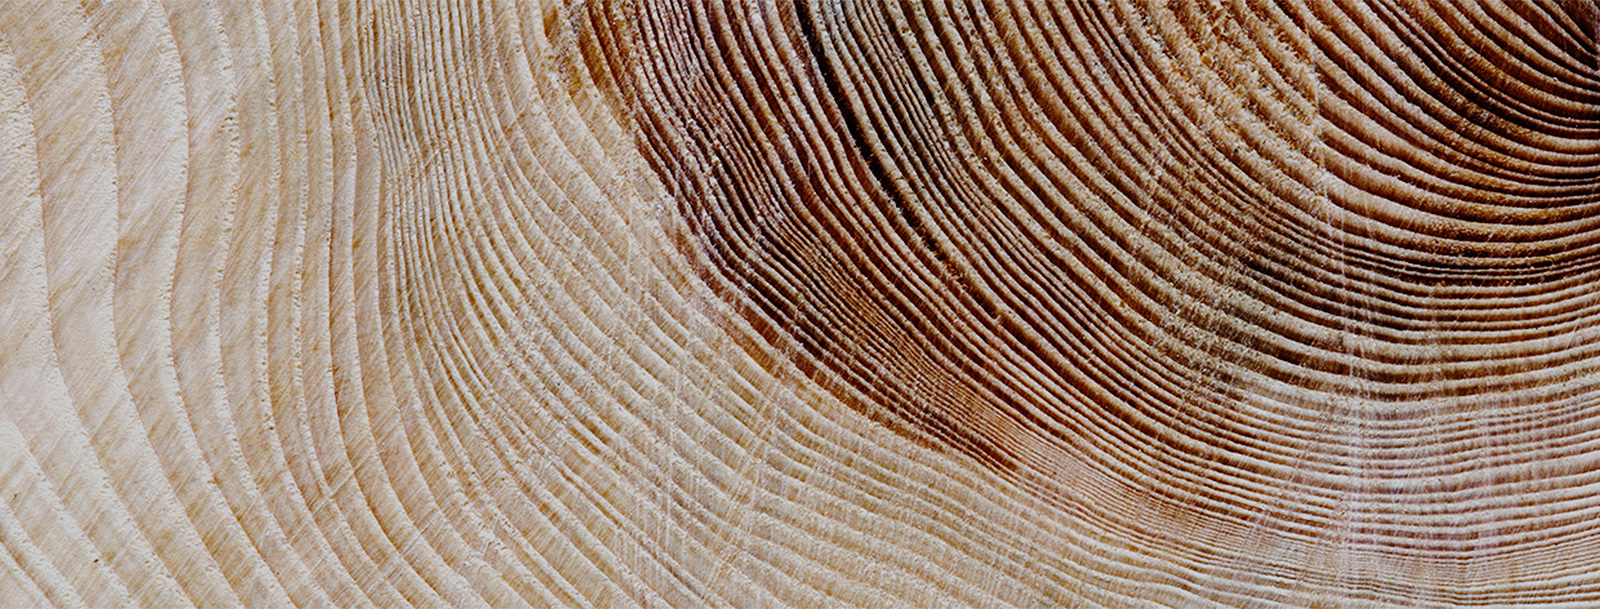 Cross-section of tree showing rings